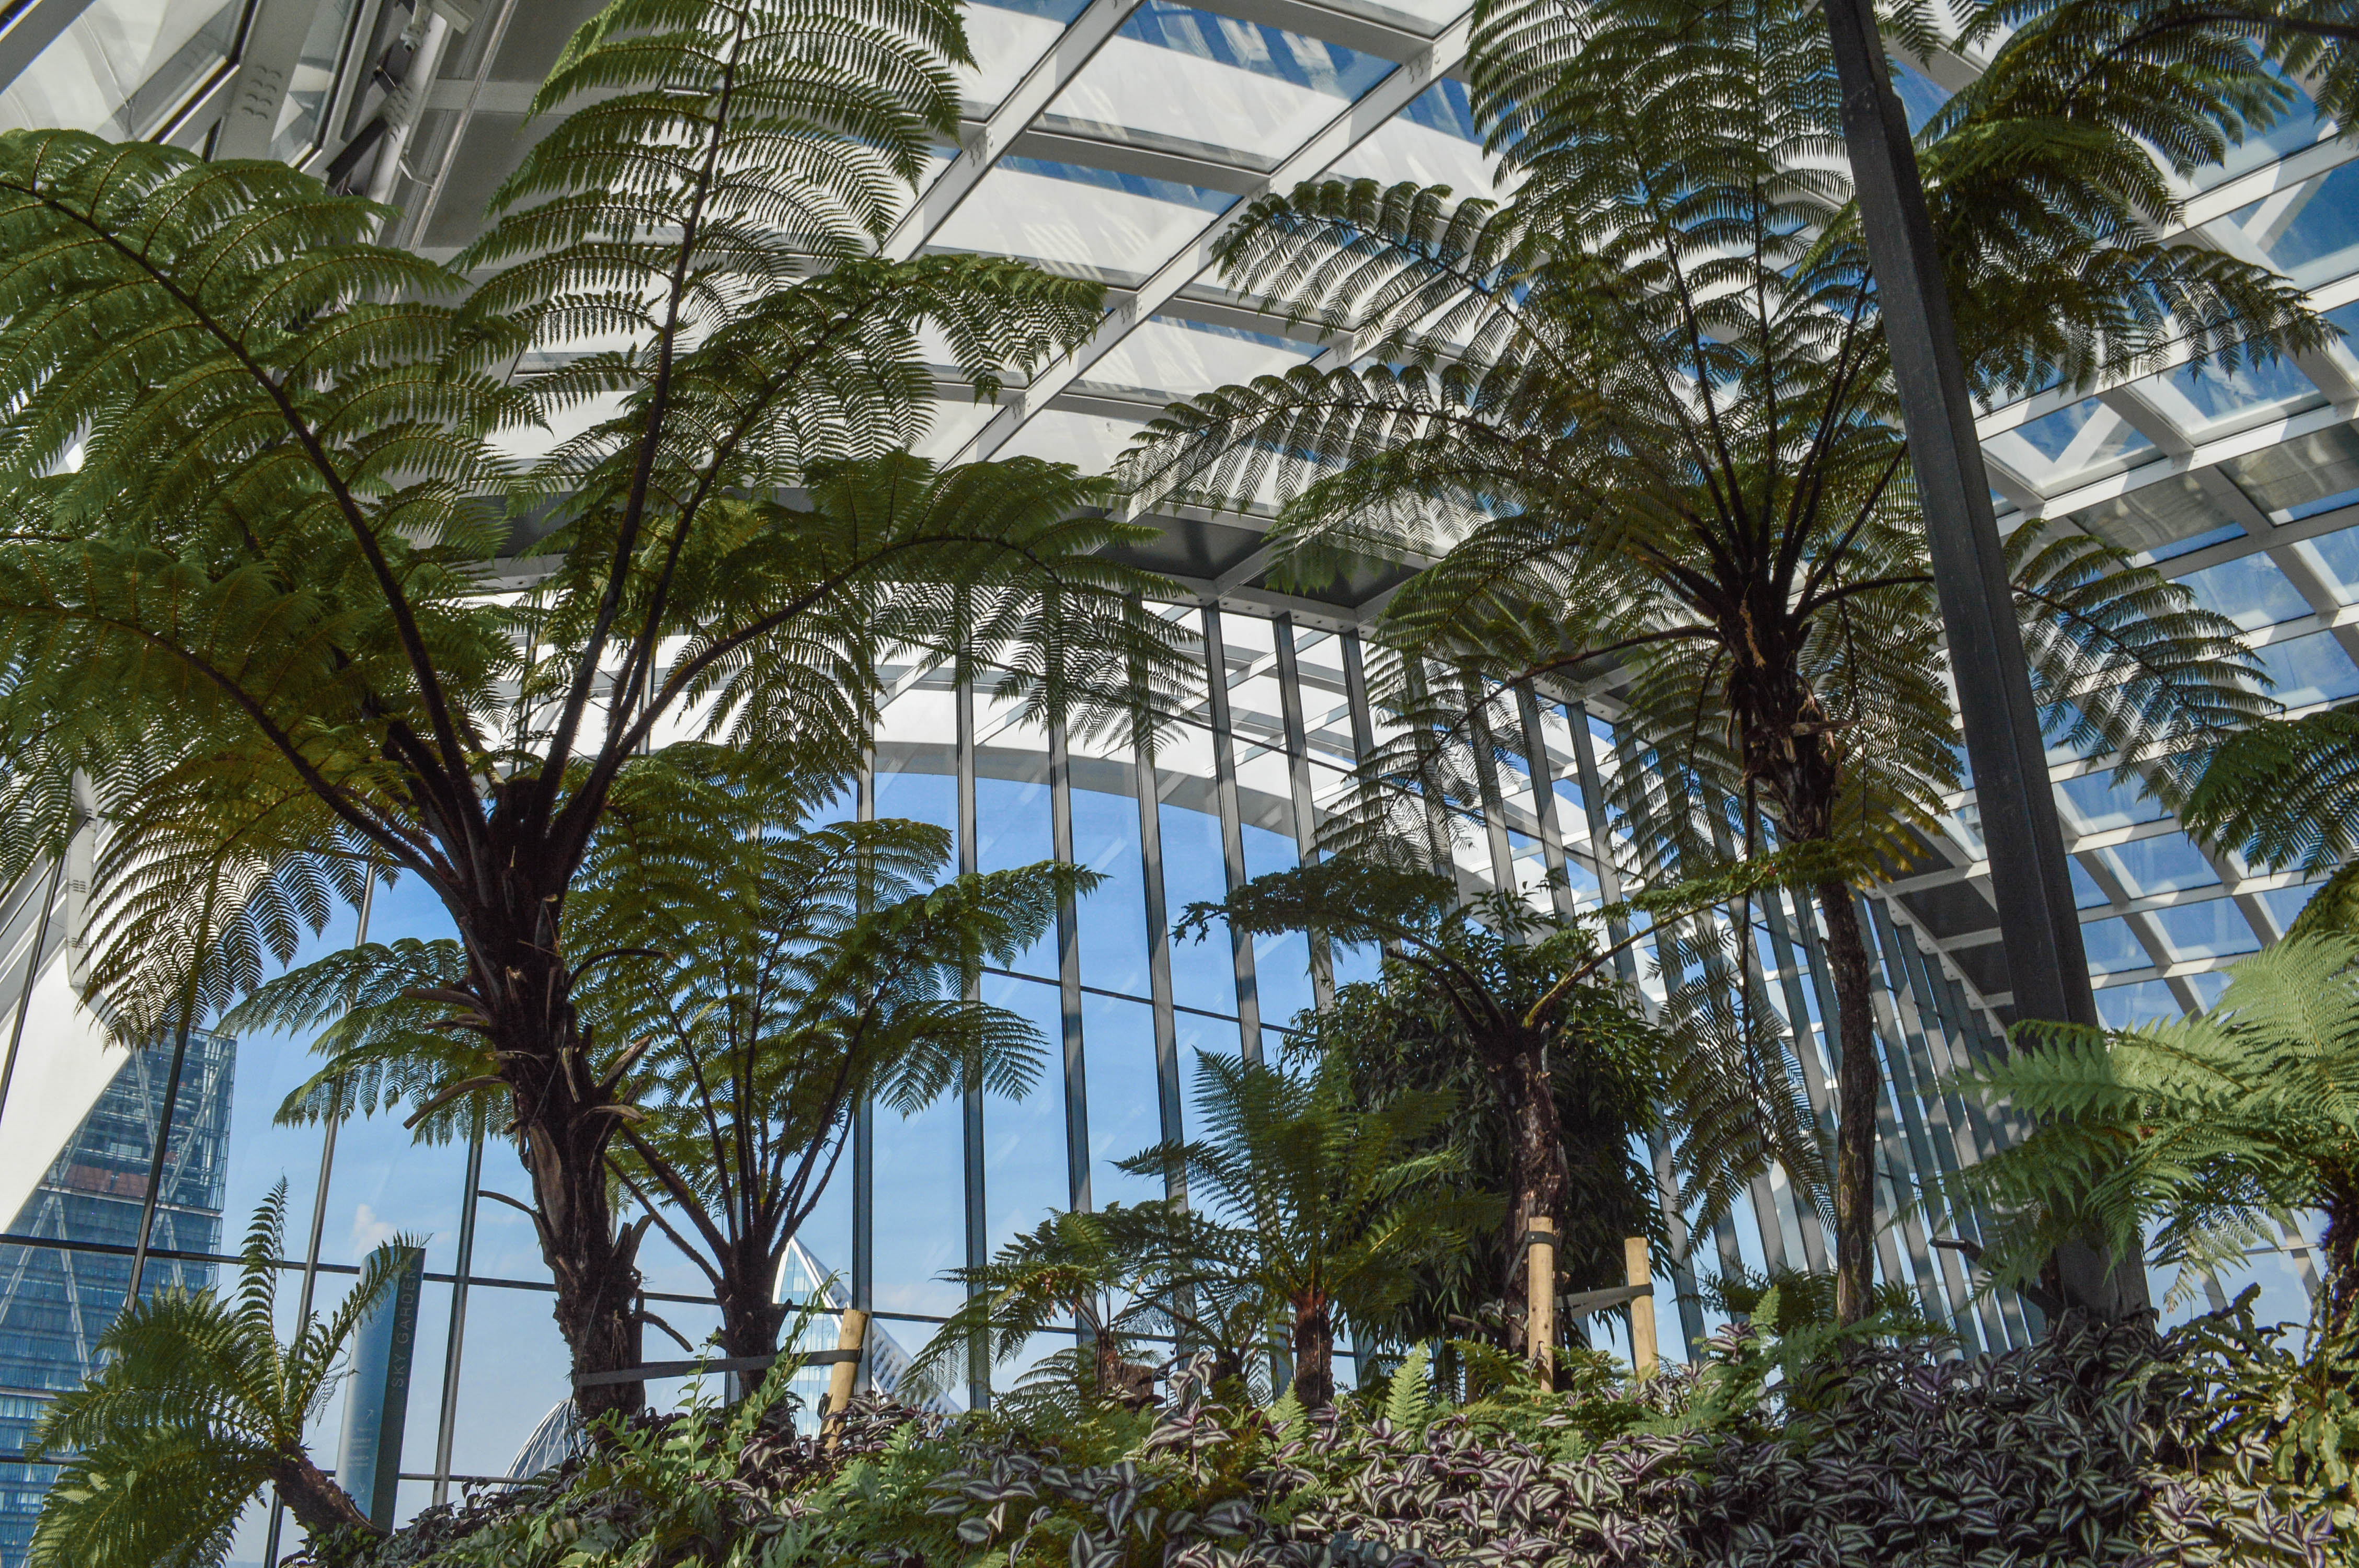 View of tall trees in Sky Garden